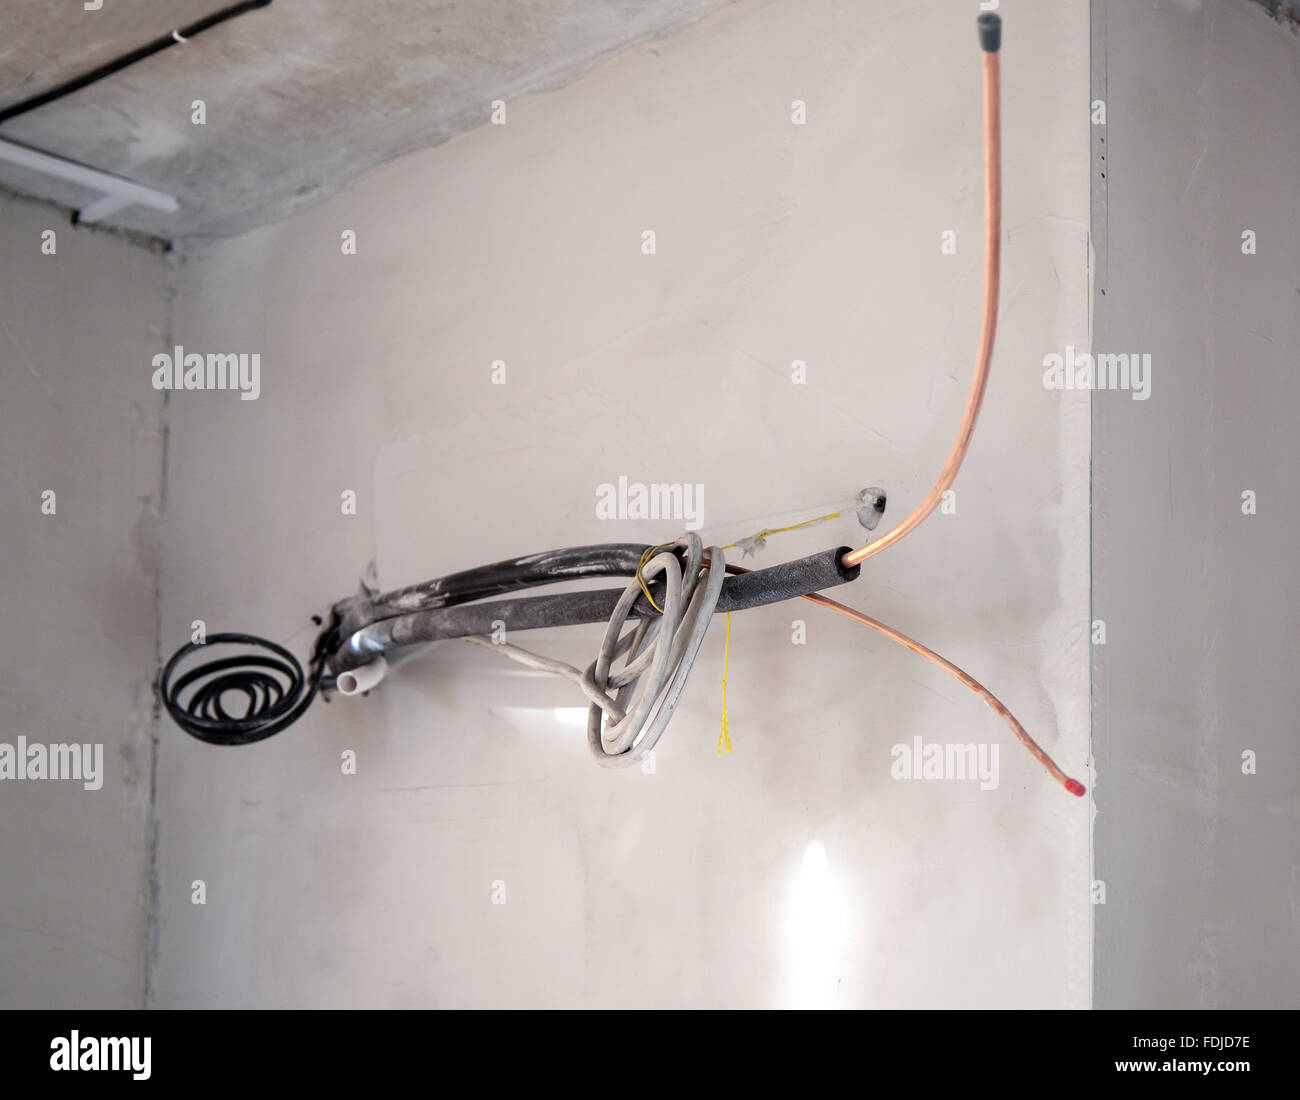 Electrical Wiring In New Home Stock Photos & Electrical Wiring In ...